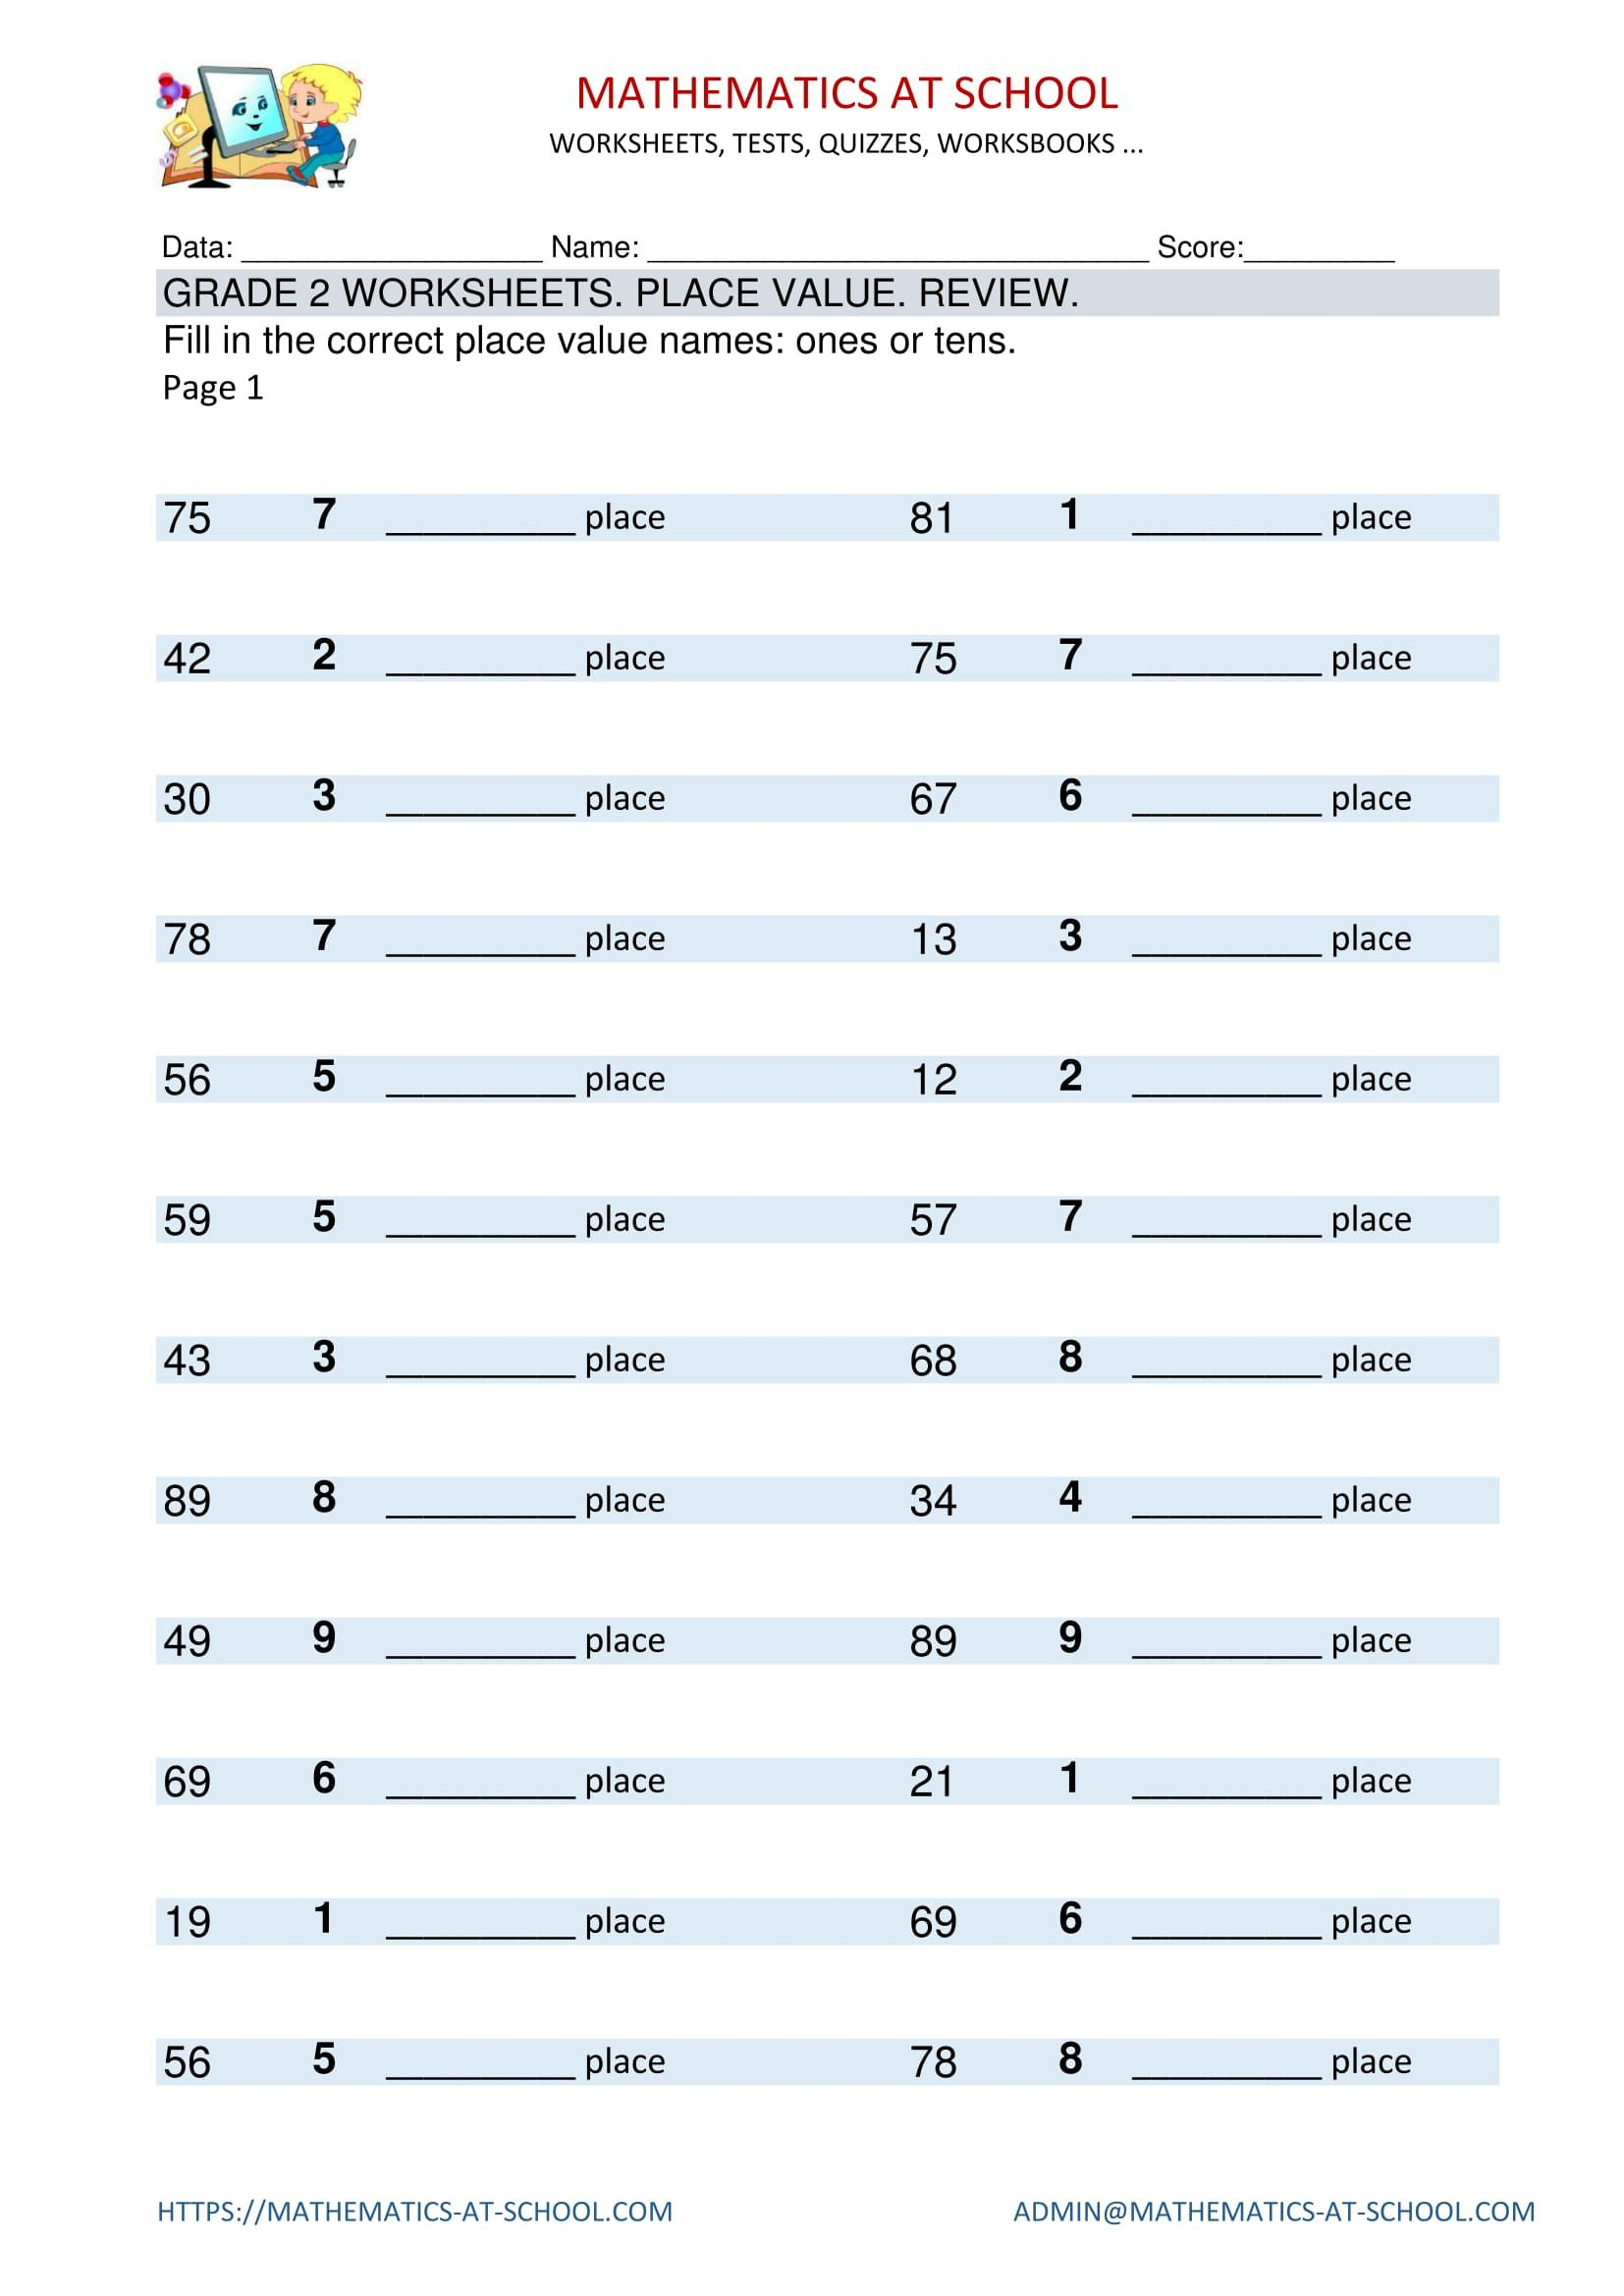 Grade 2 Worksheets Place Value Names Review Place Value